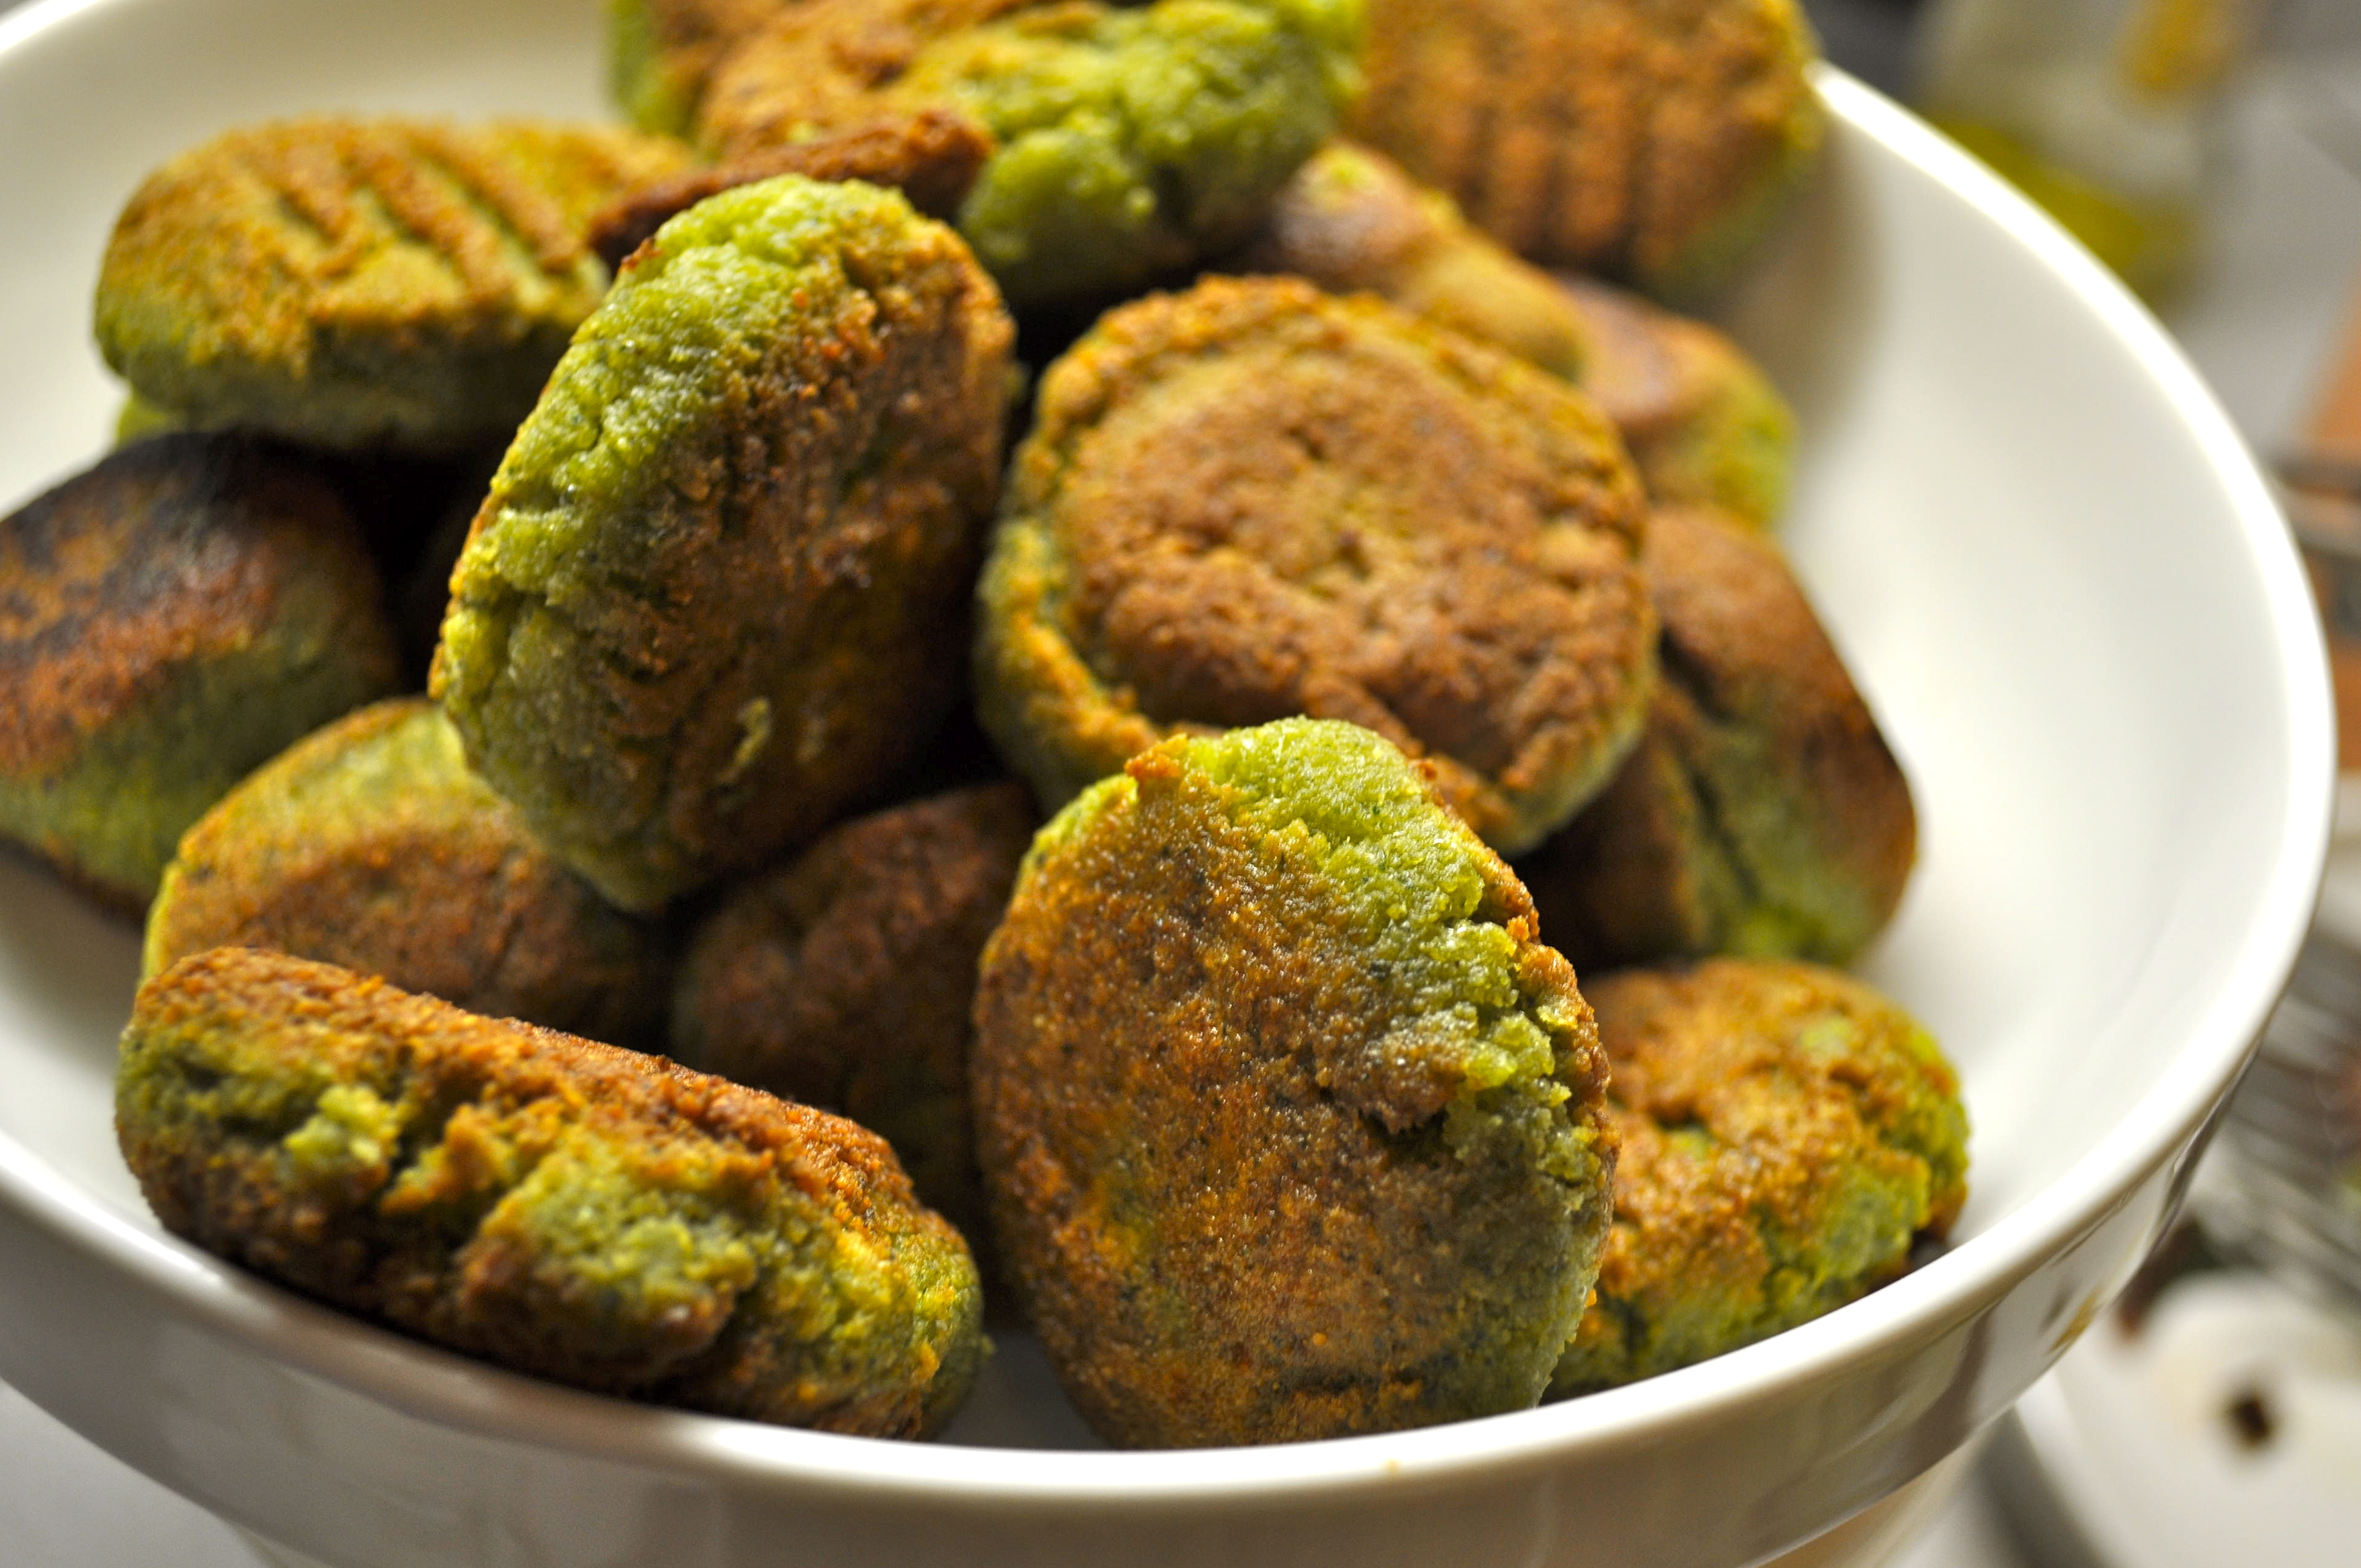 Herb & Garlic Falafel with Tahini Sauce | Cultivating Sustainability